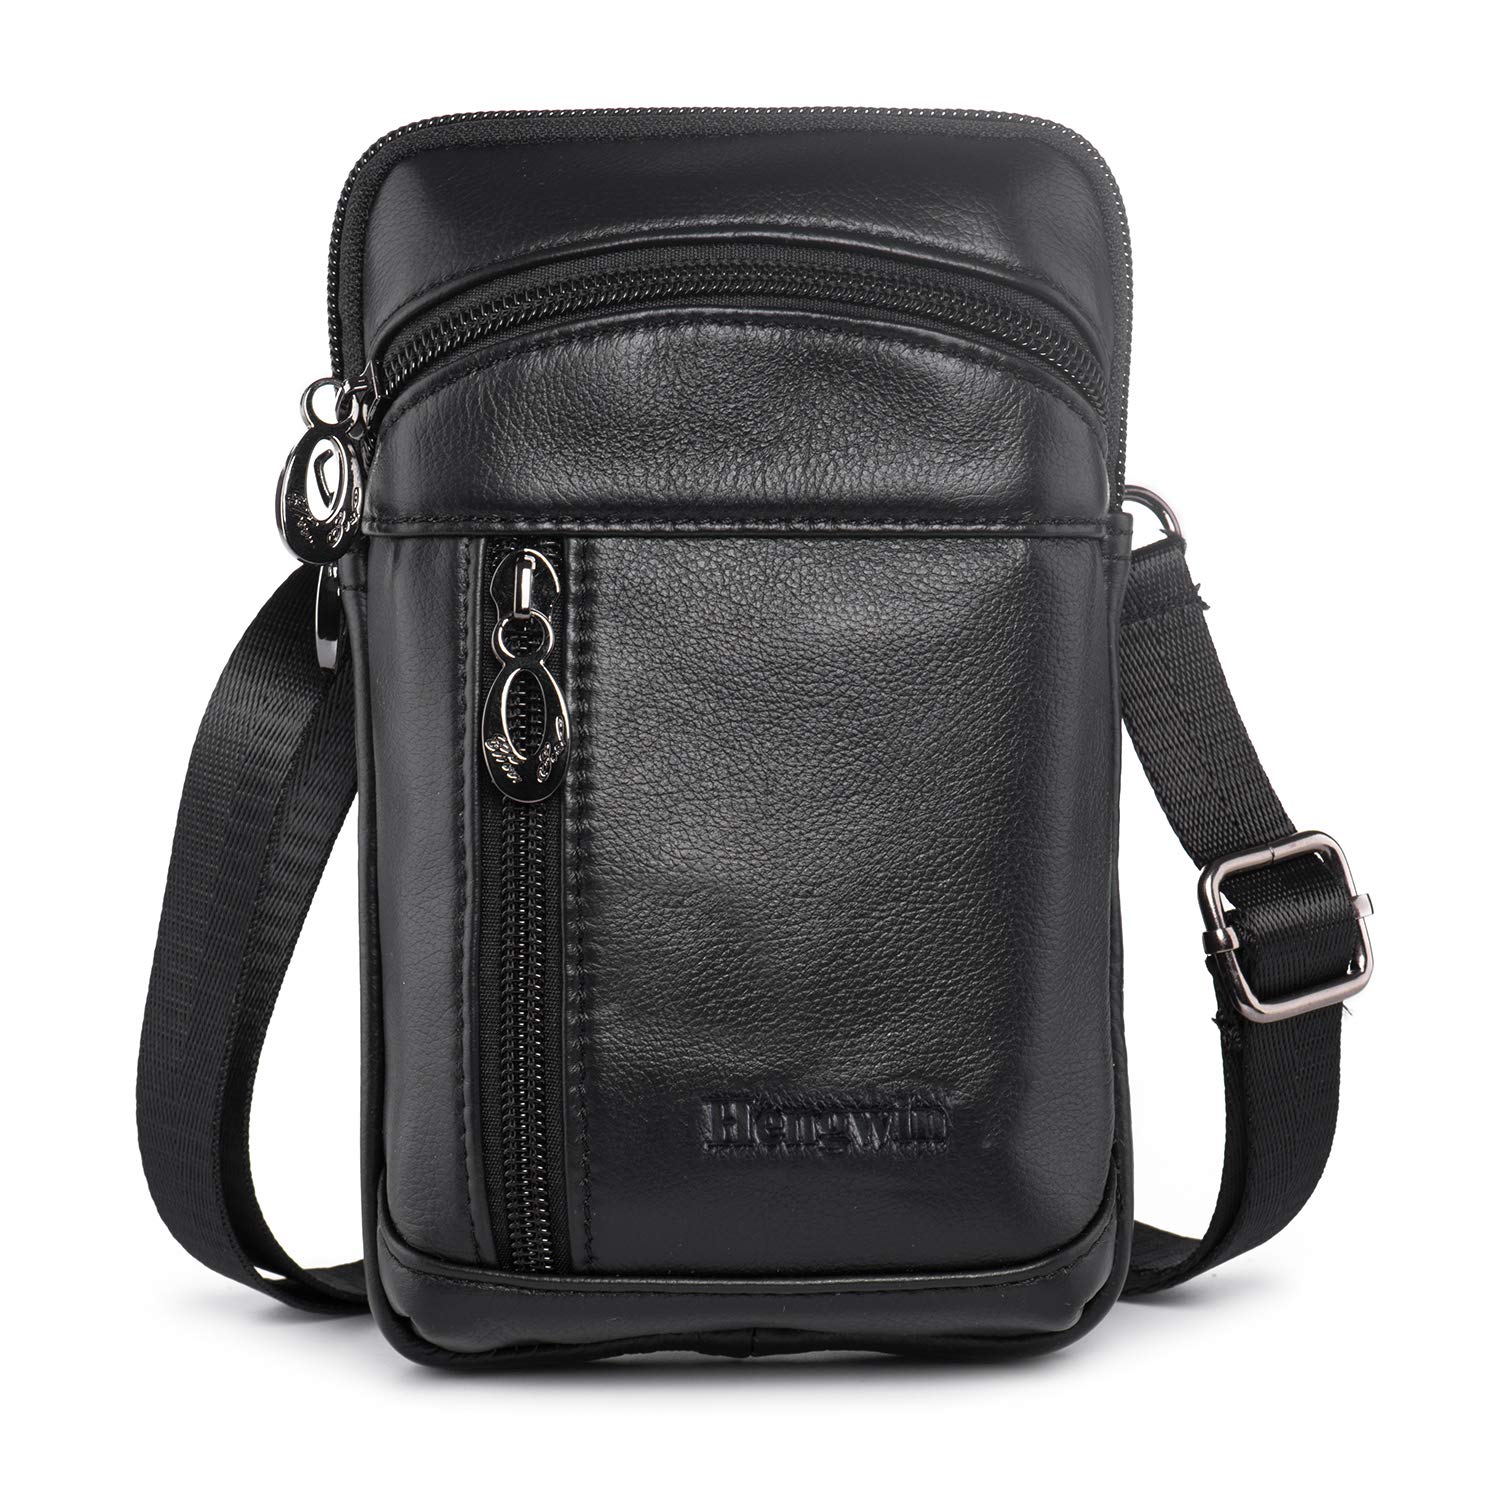 0afae197d341 Hengwin Men Leather Shoulder Crossbody Bags, Small Vertical Cell ...